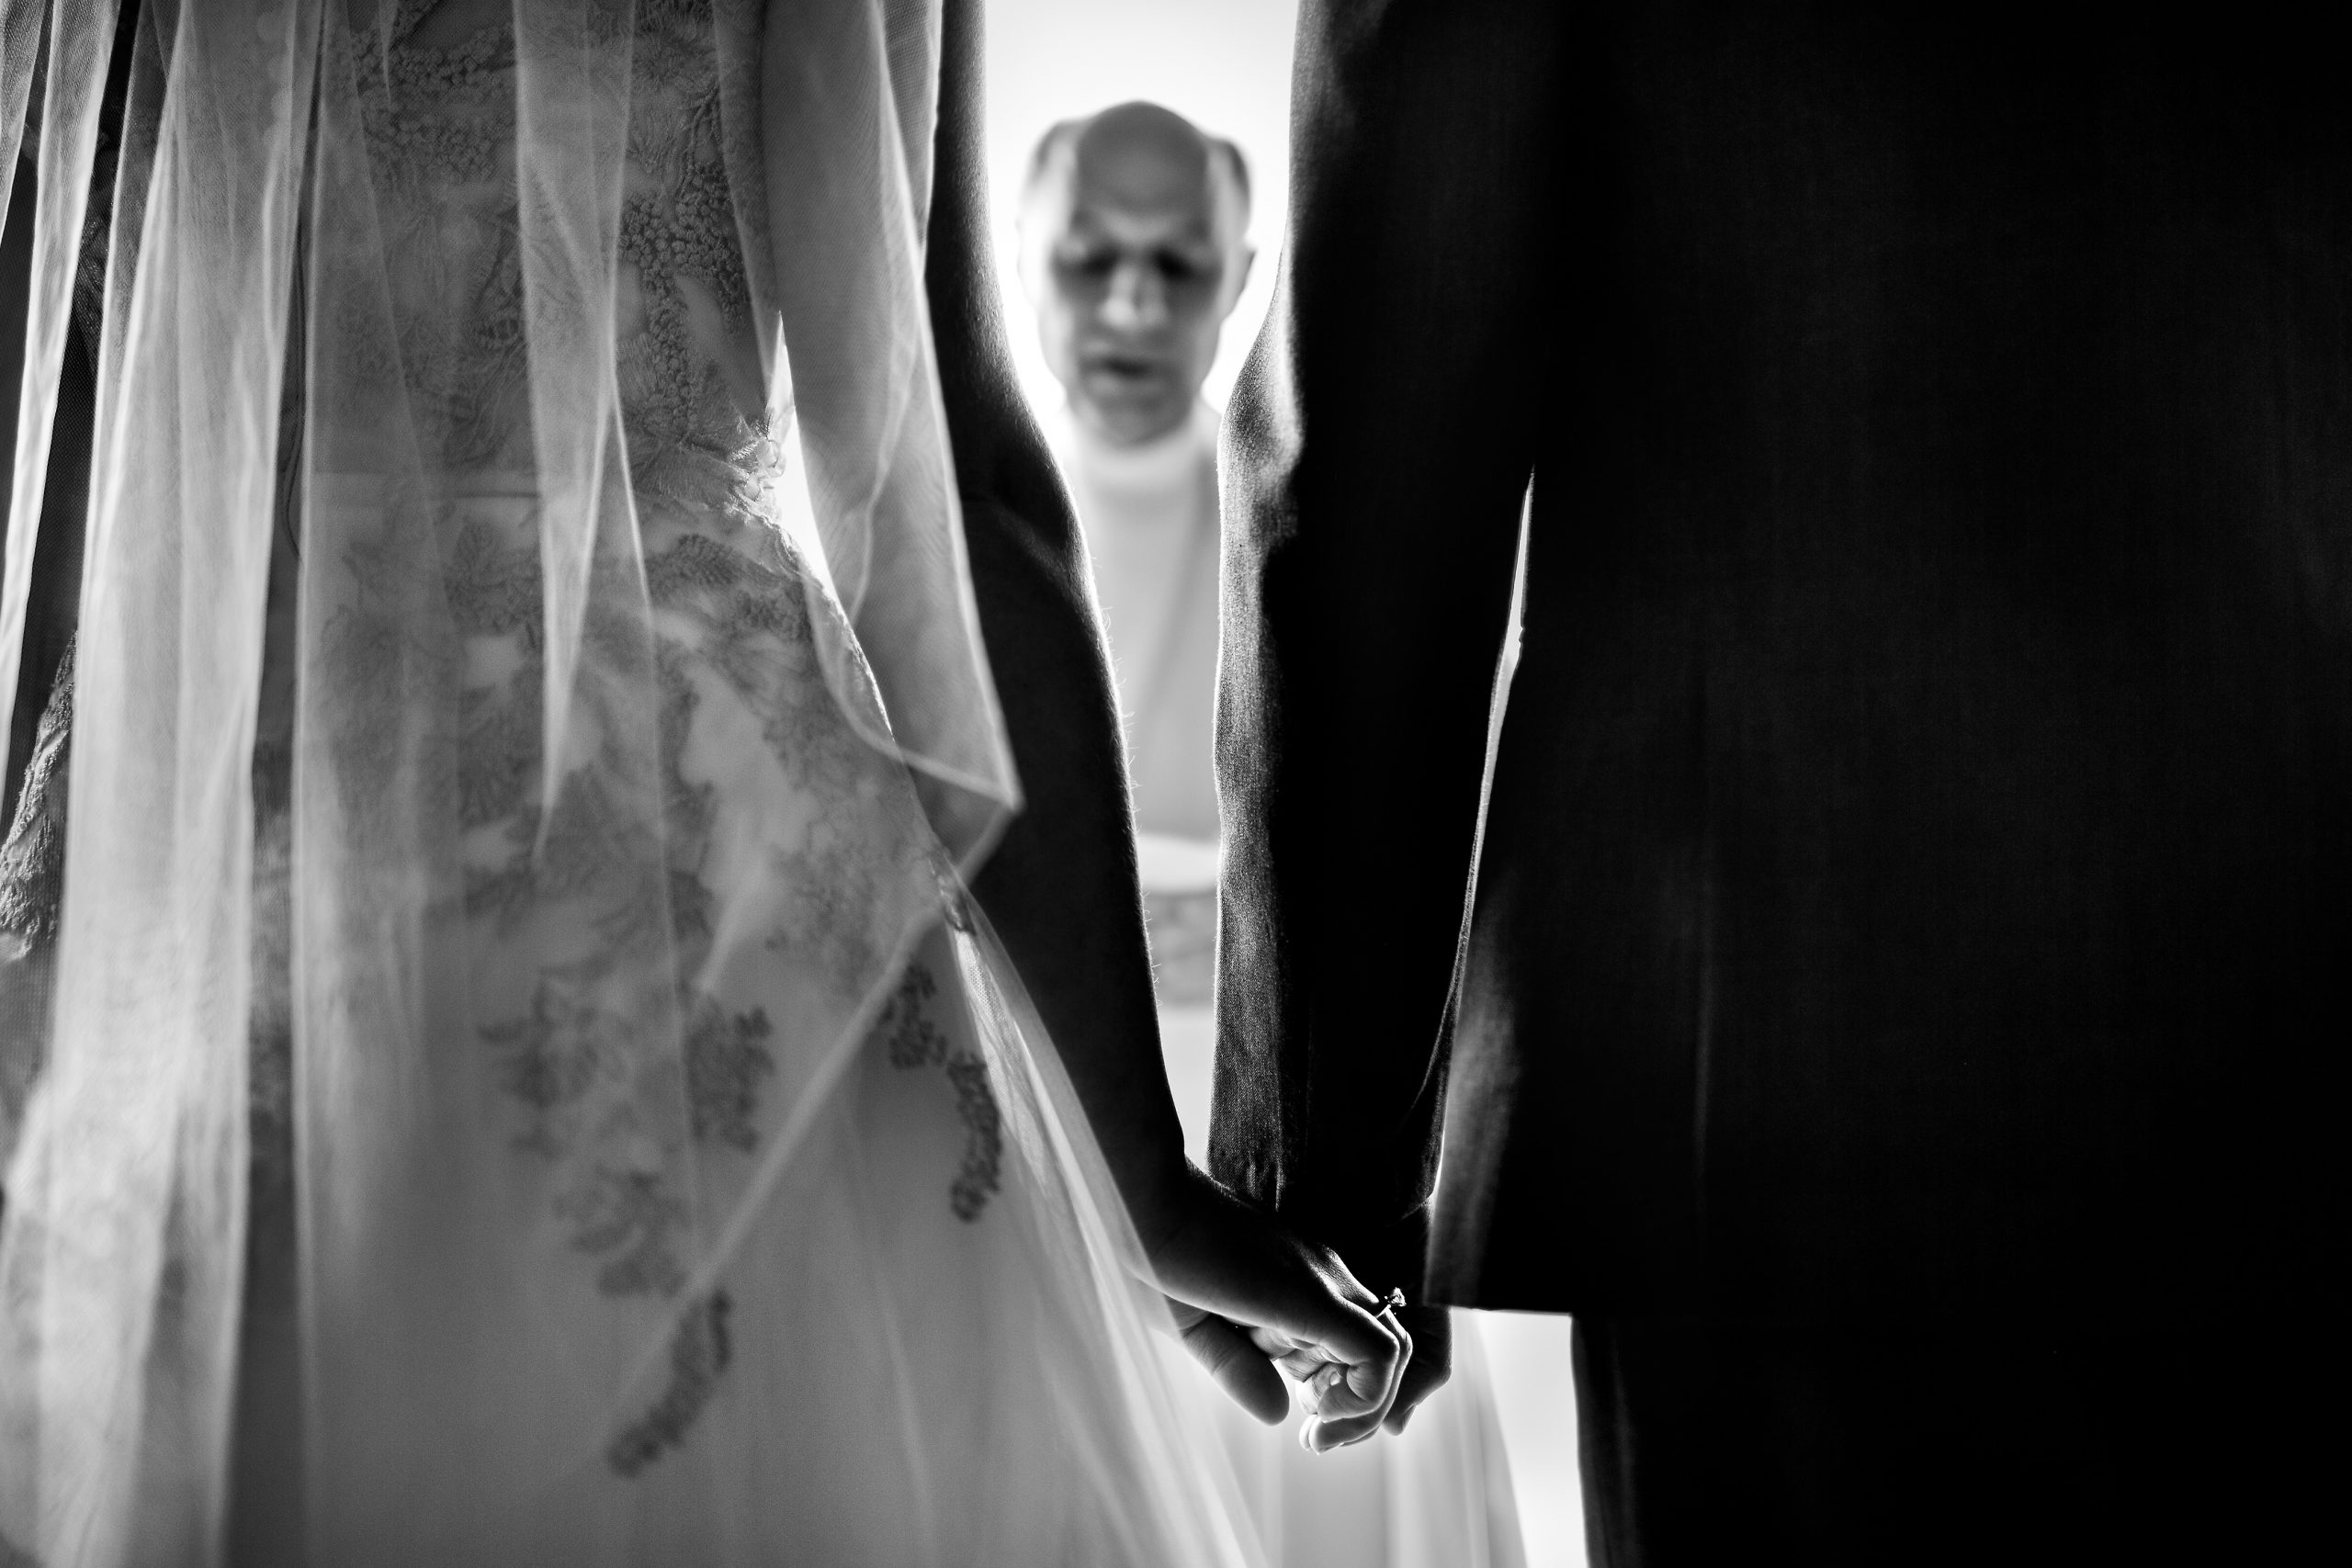 Bride and groom hold hands and between them a priest can be seen